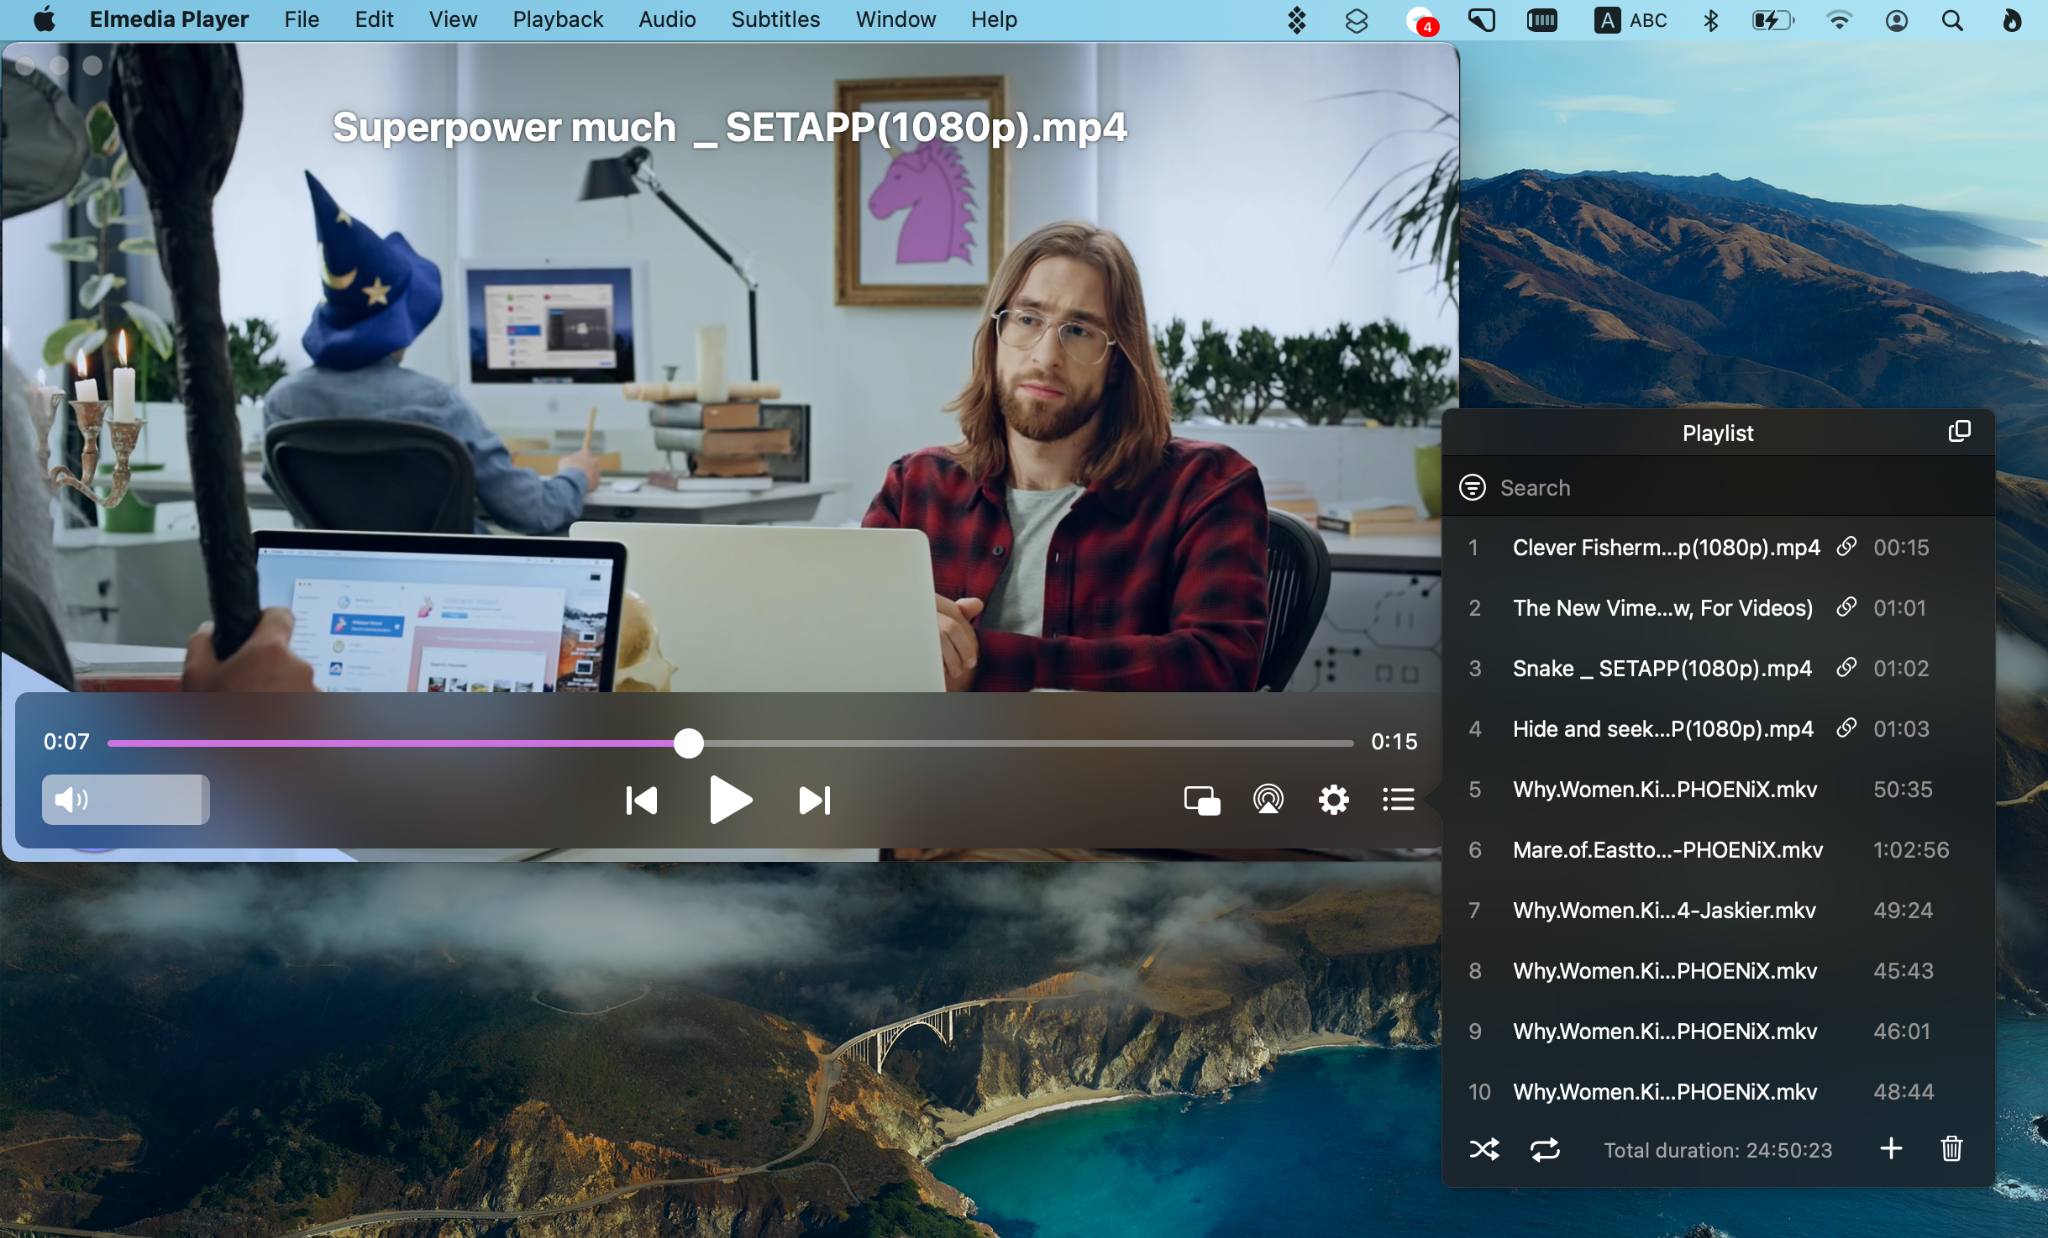 YouTube player with a playback control